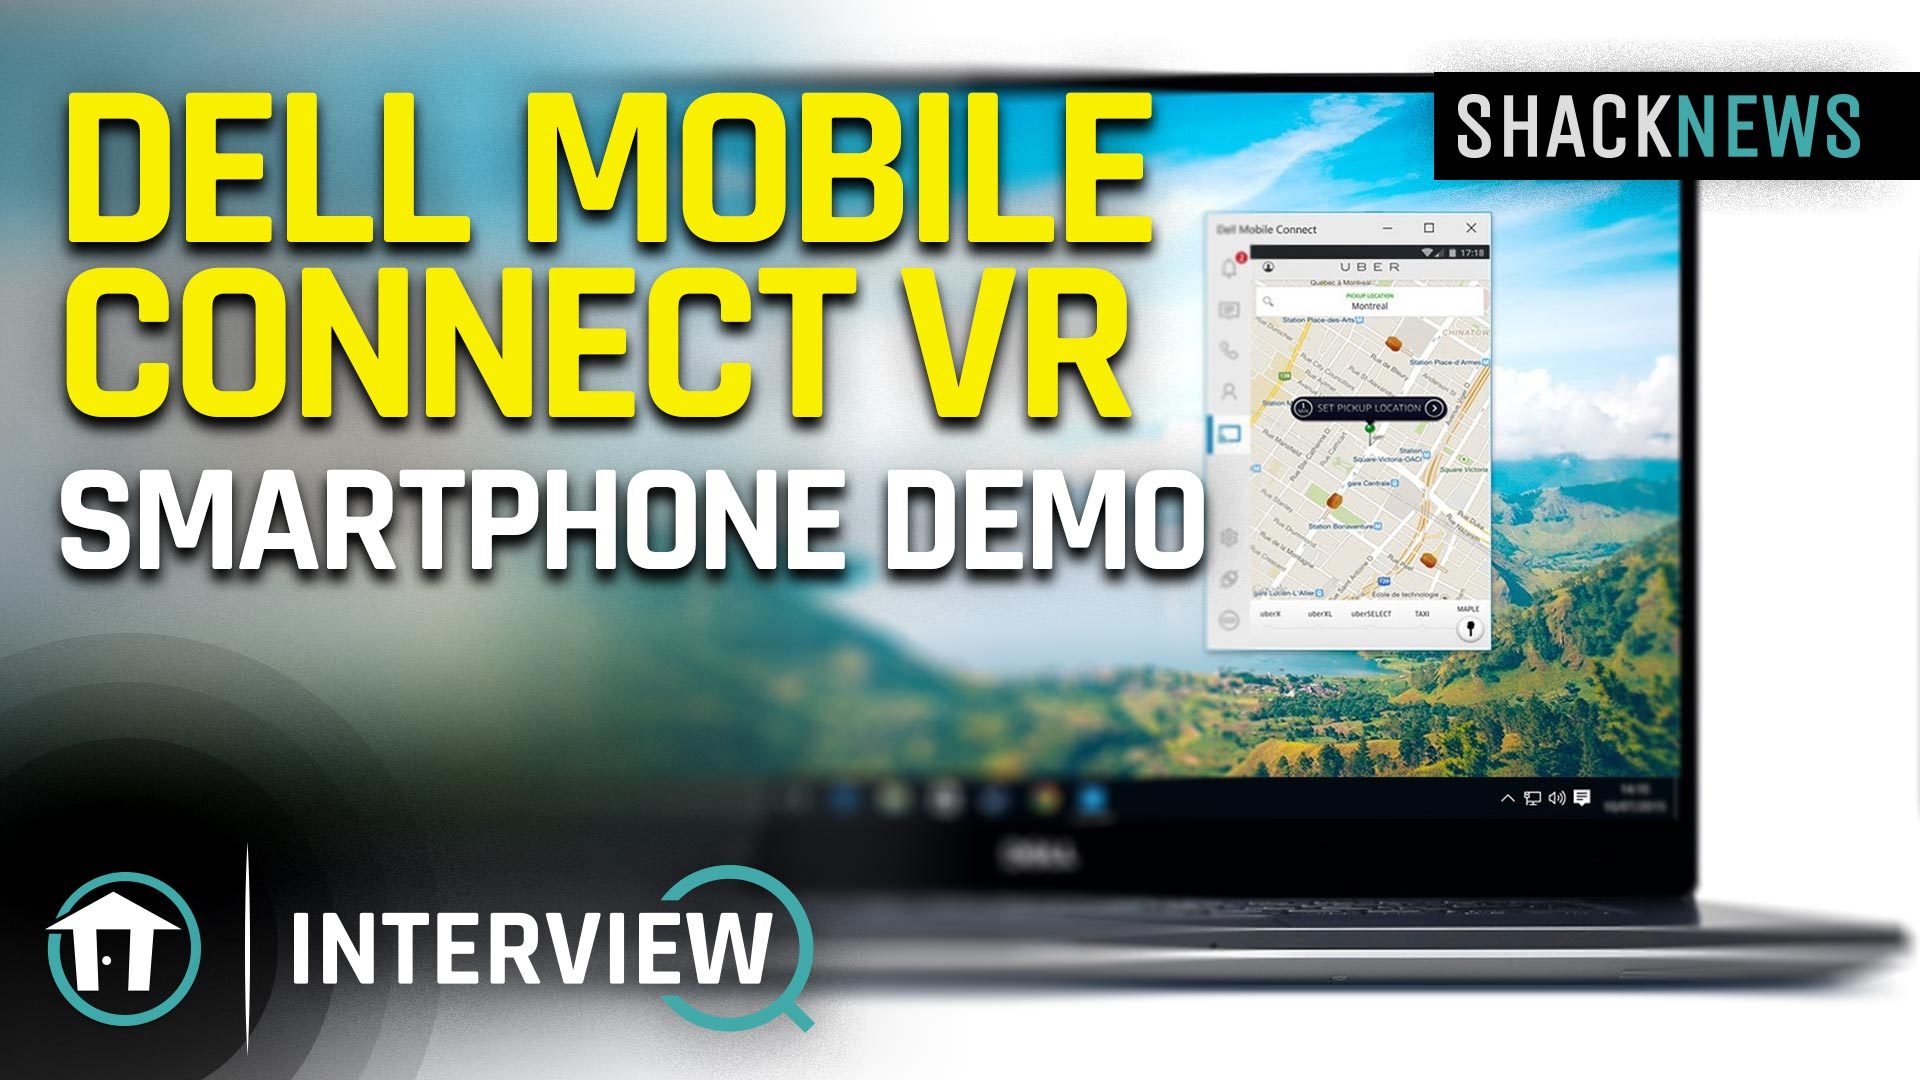 Dell Mobile Connect brings smartphones into the VR world